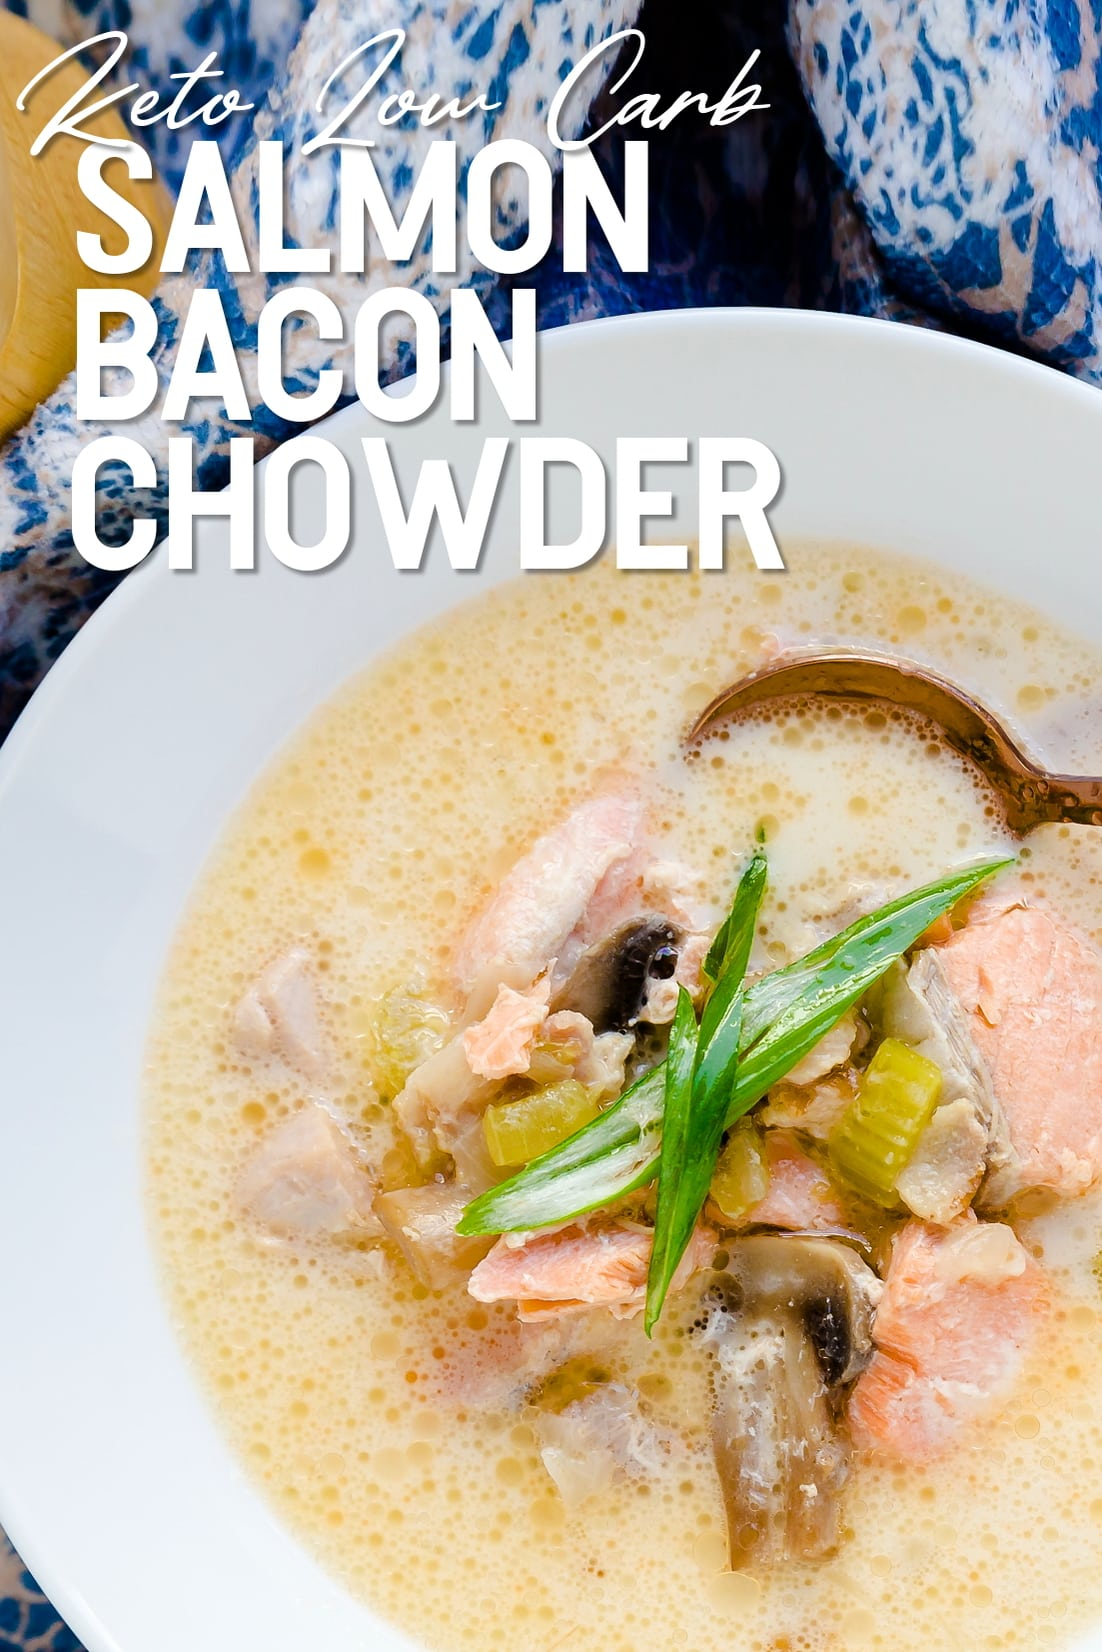 Salmon Bacon Chowder served in a white bowl with golden spoon top down